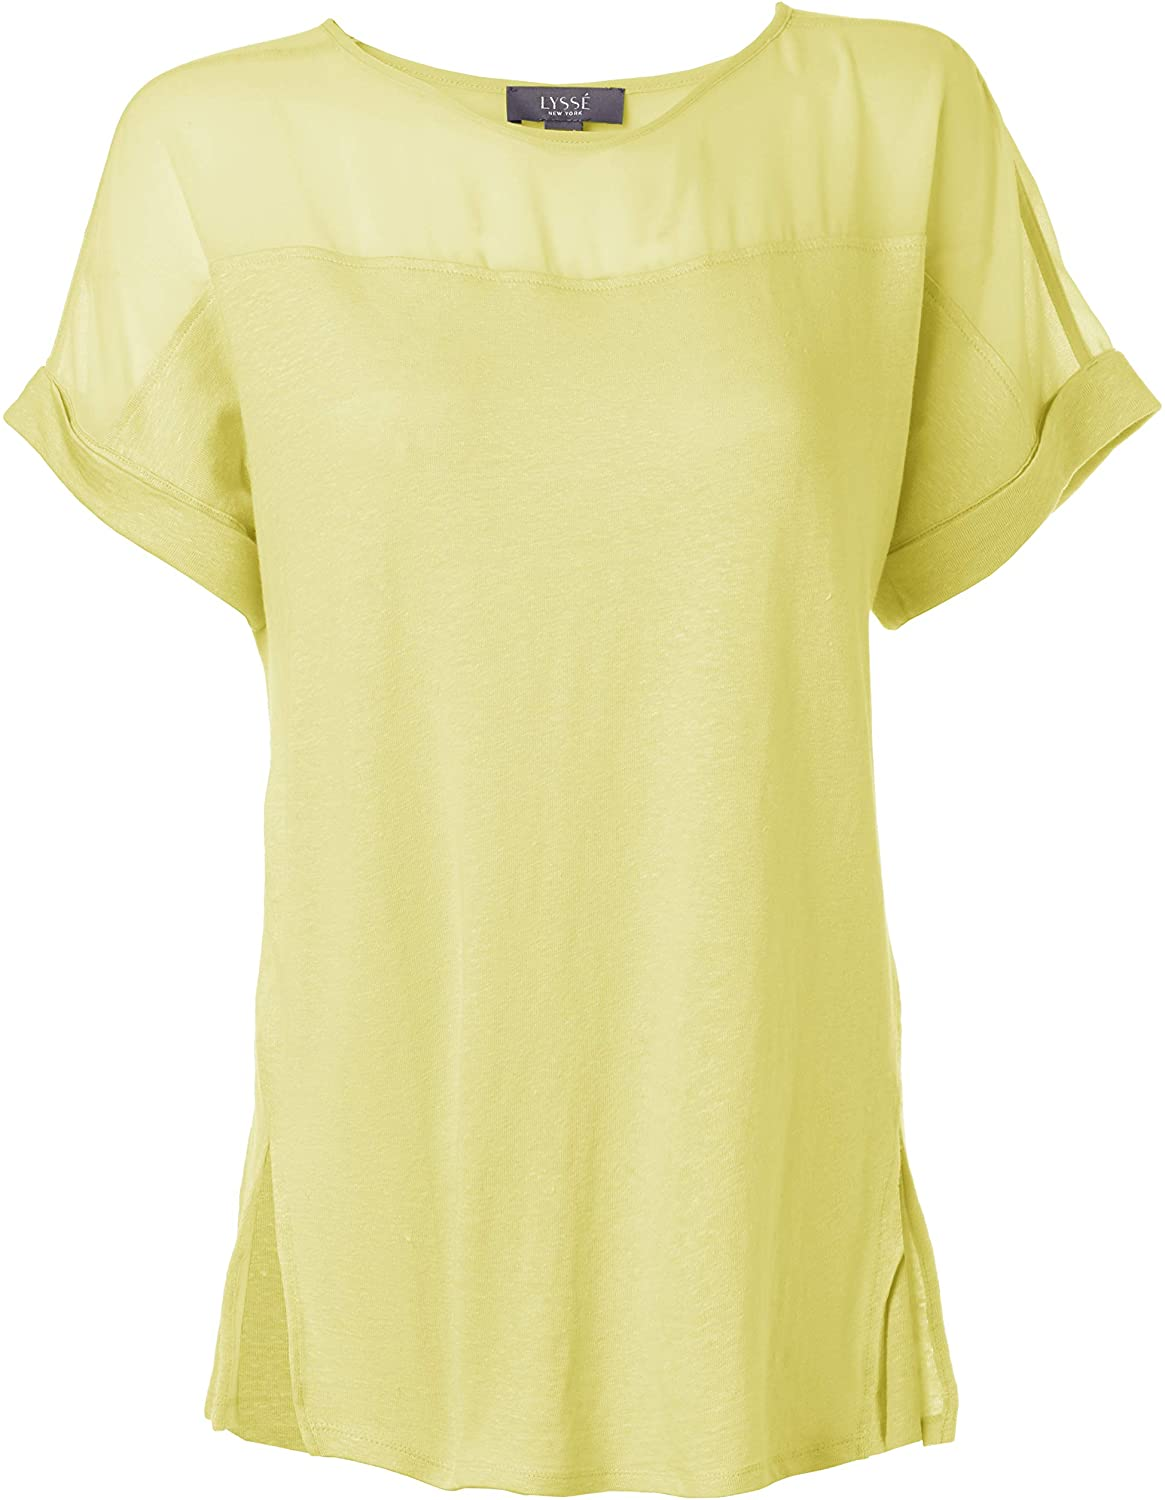 Lyssé Women's Short Sleeved Top